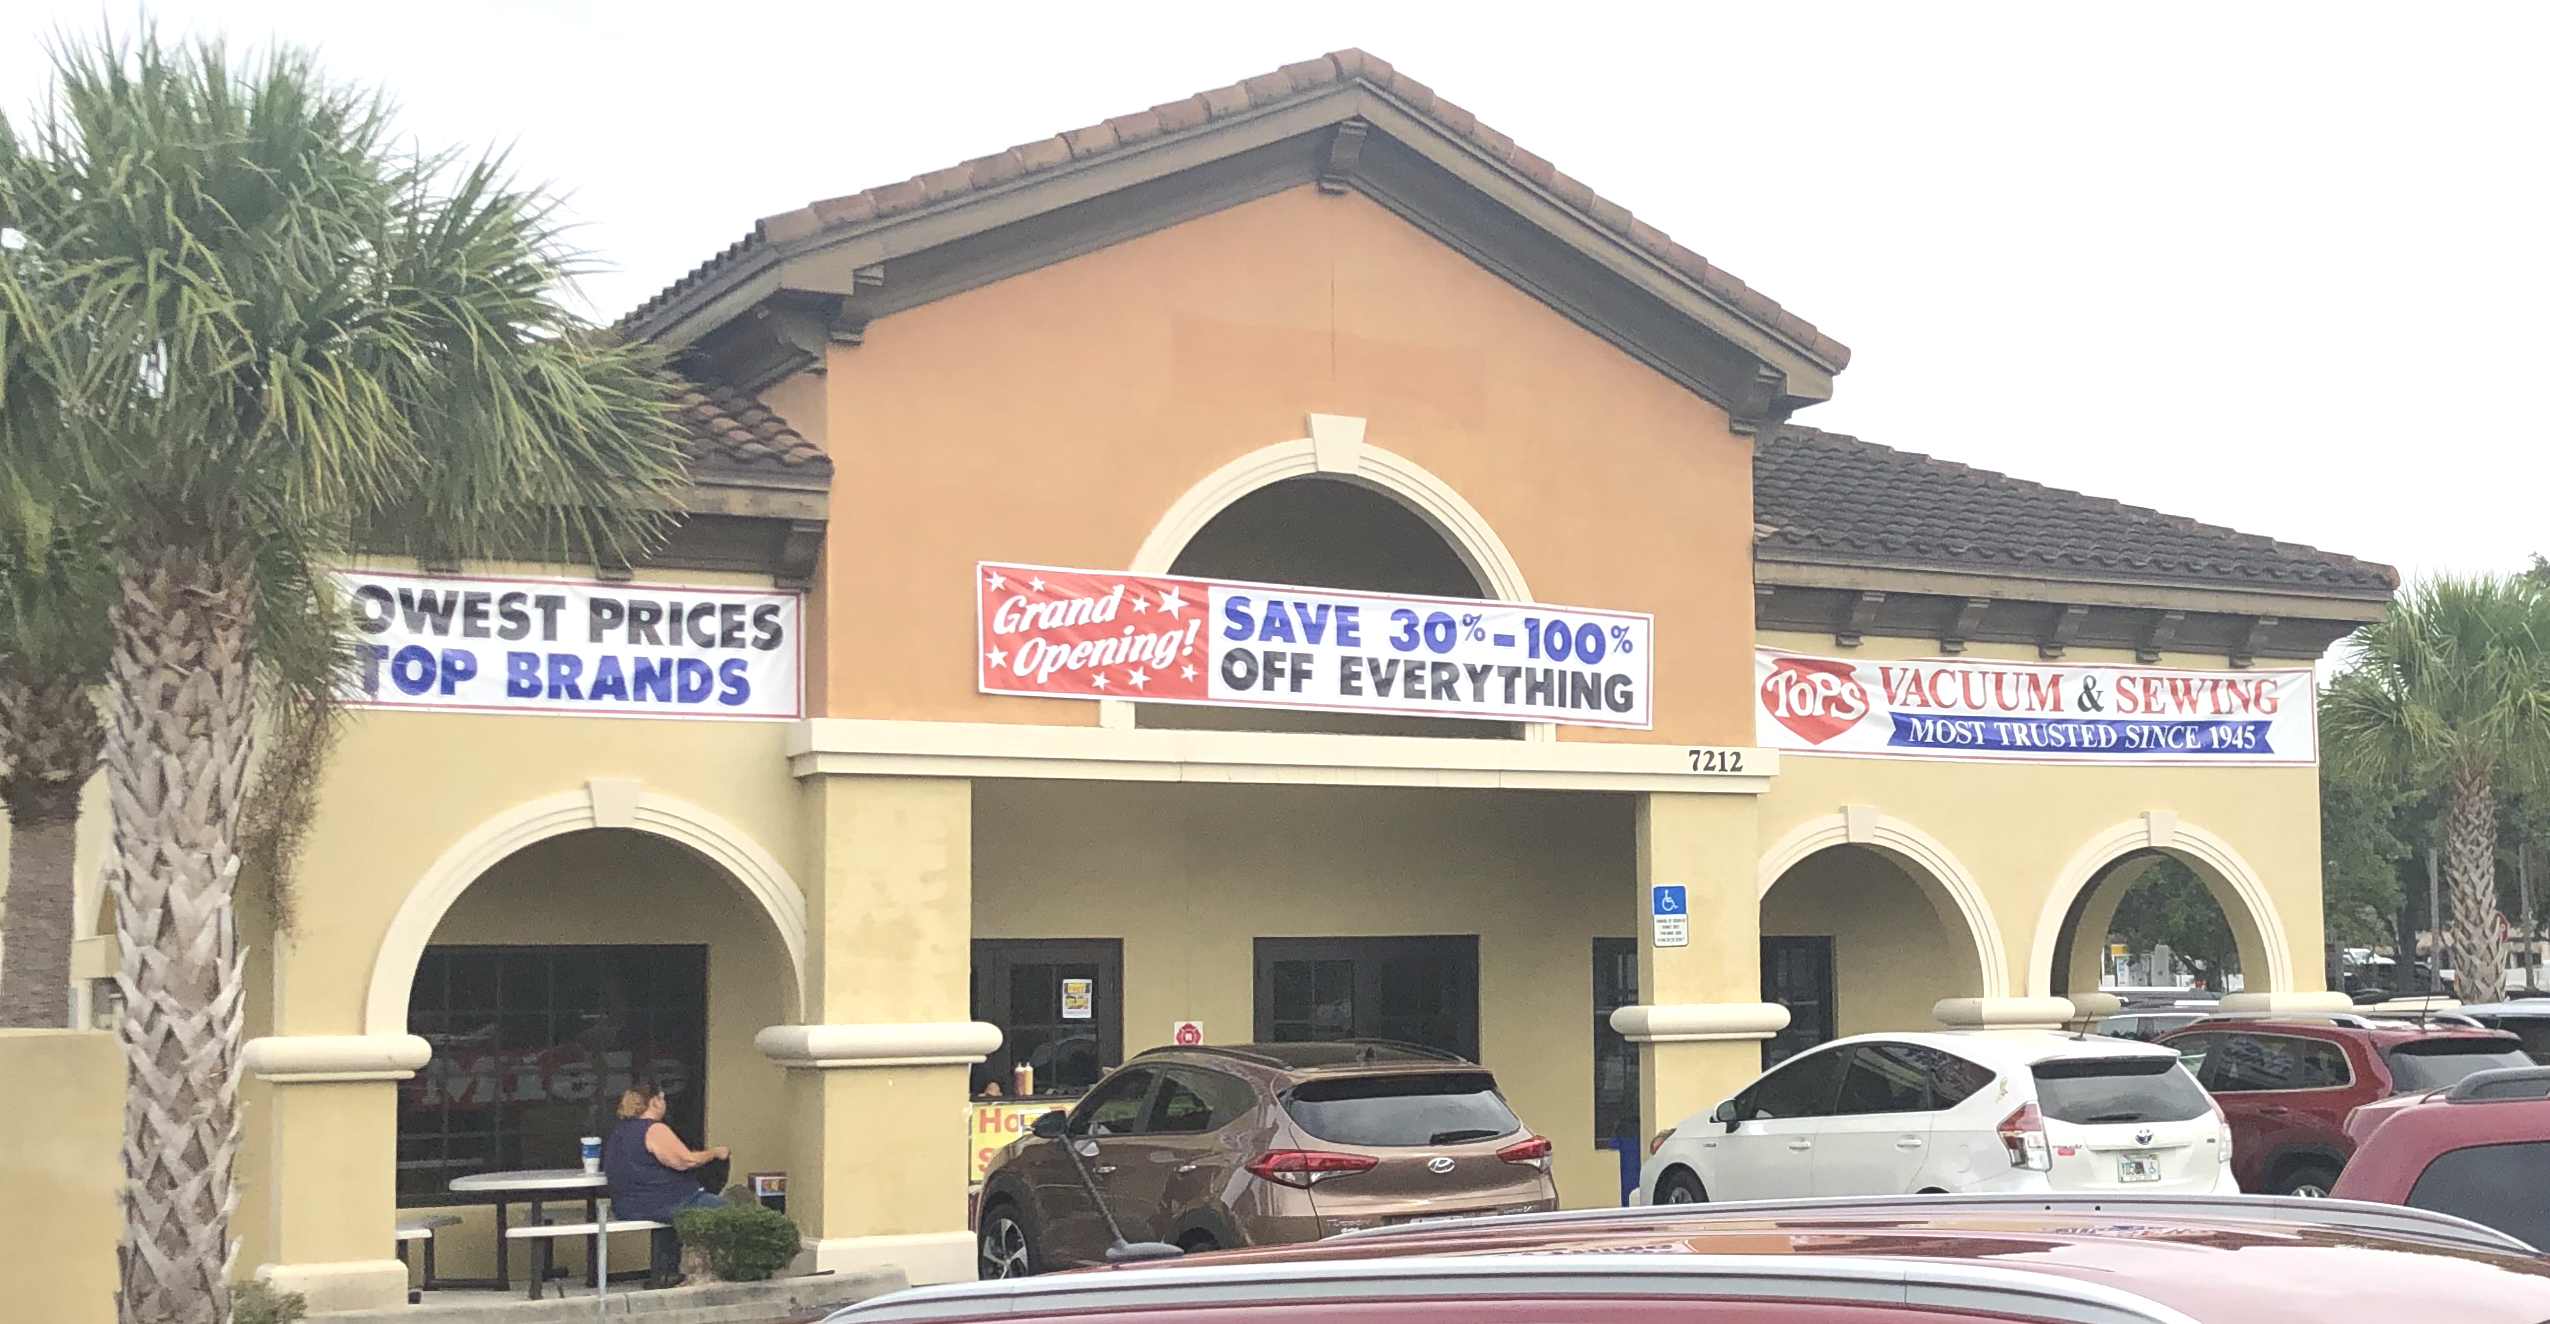 Tops Vacuum and Sewing - Lakewood Ranch